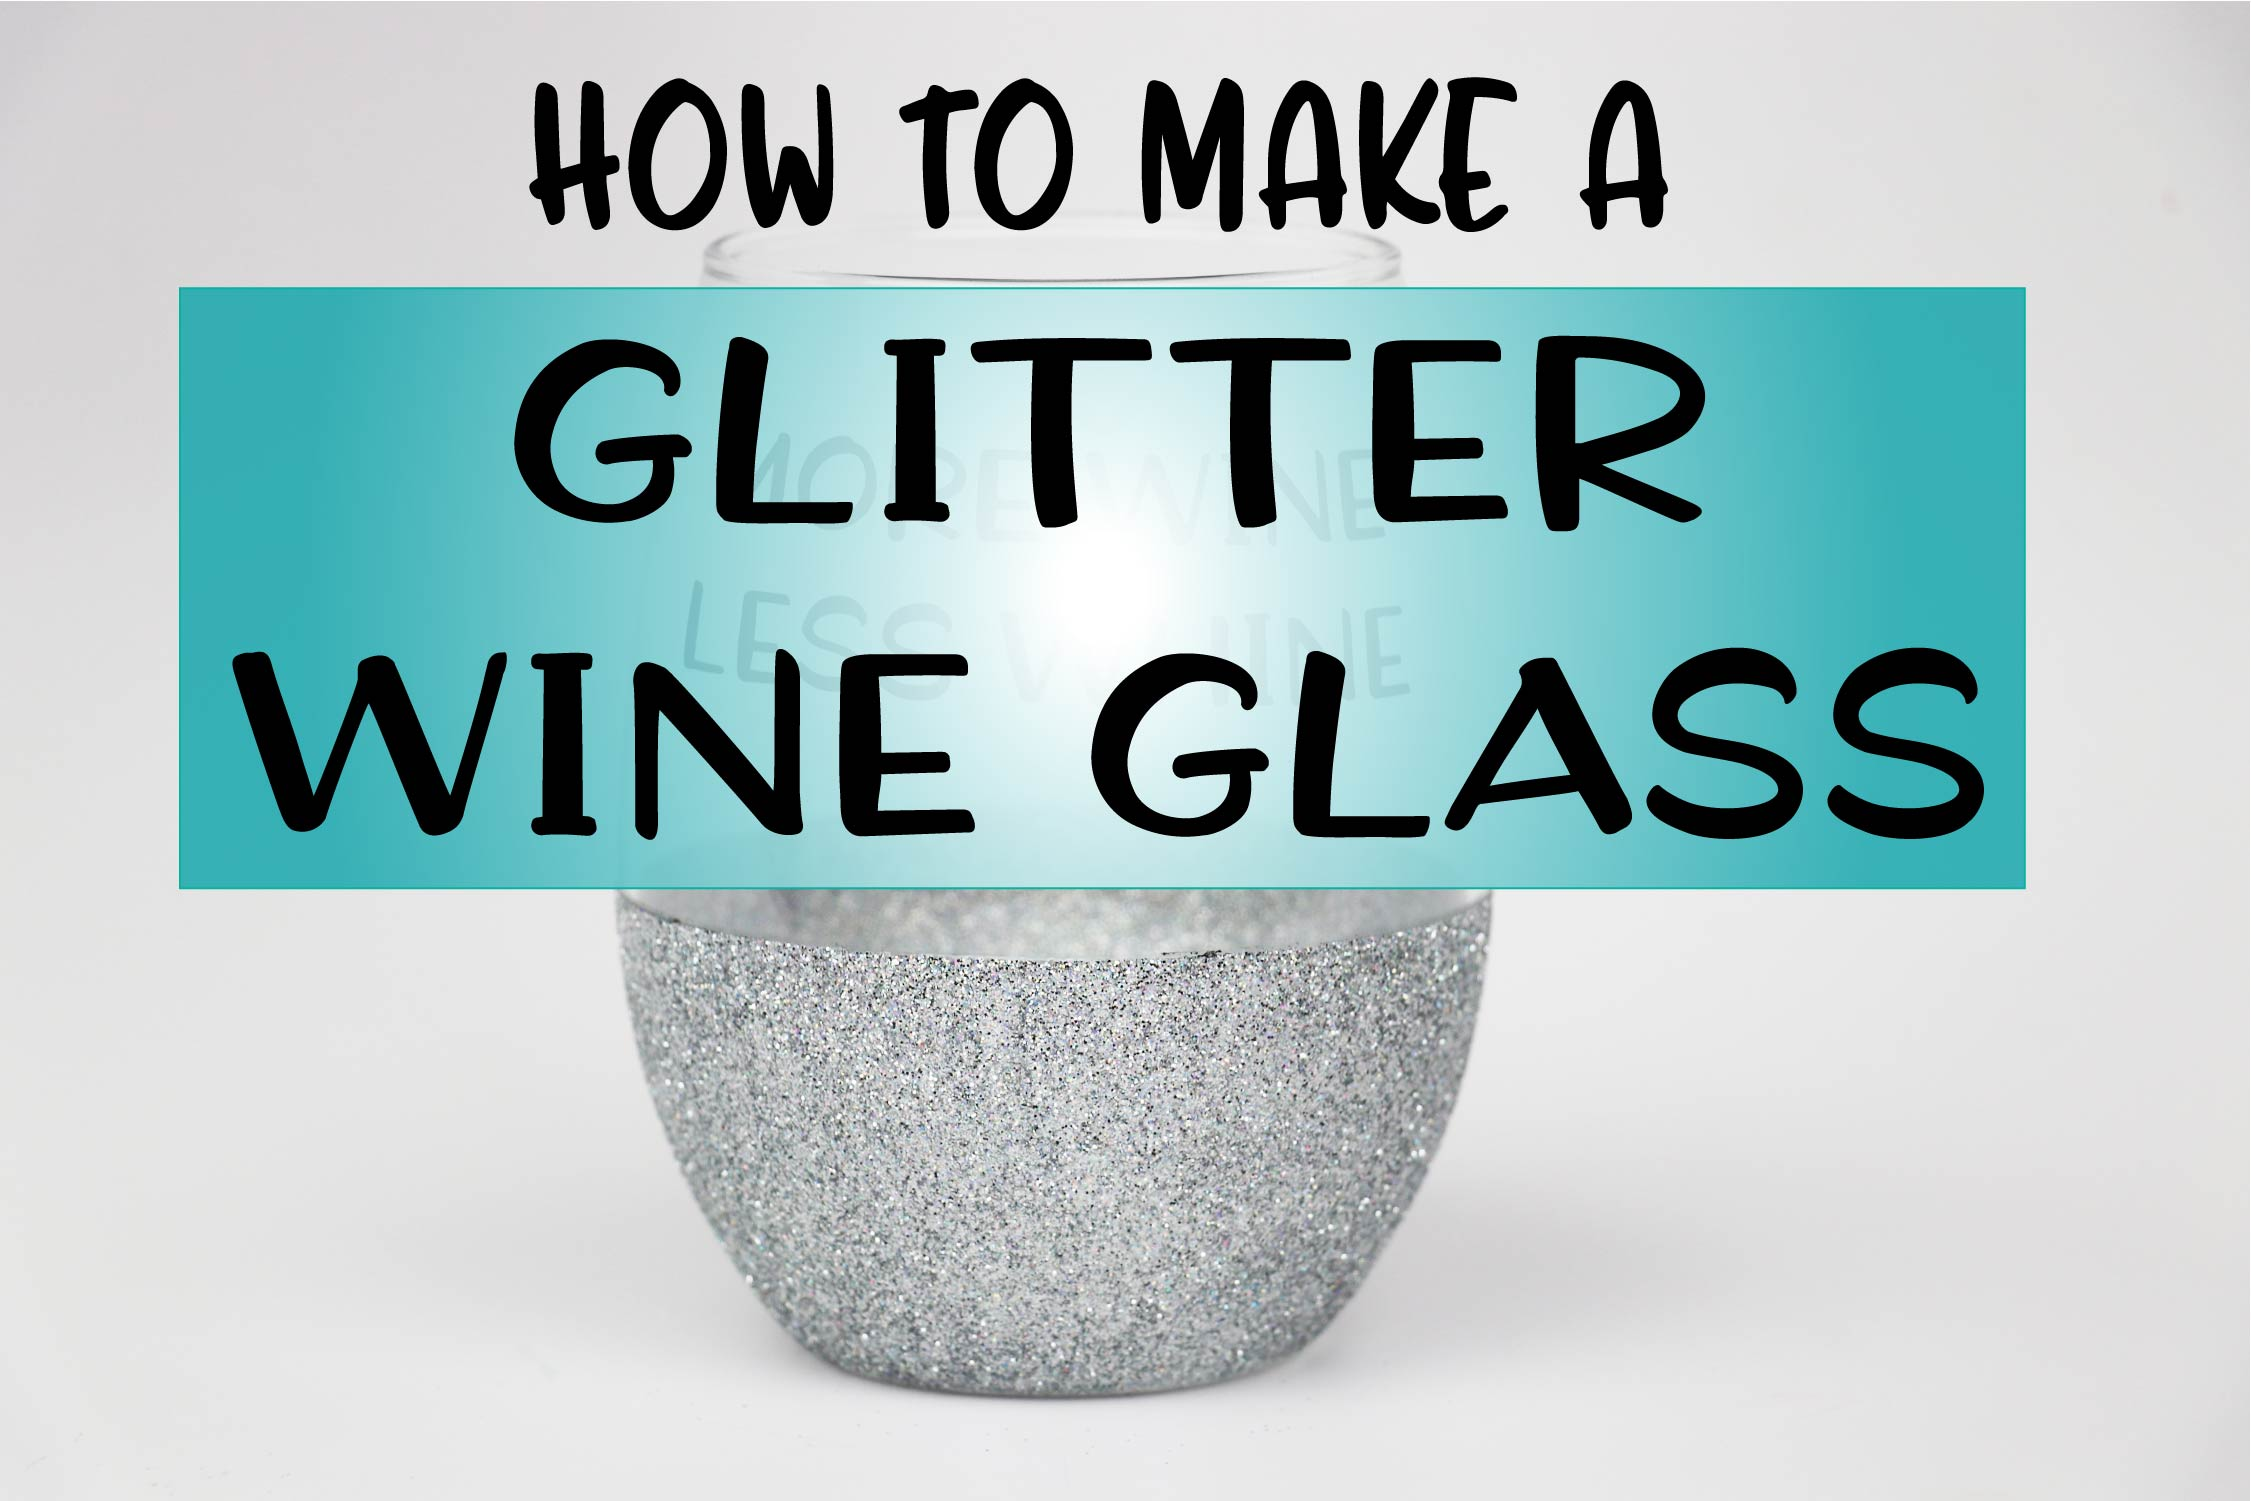 How to make a Glittered Wine Glass